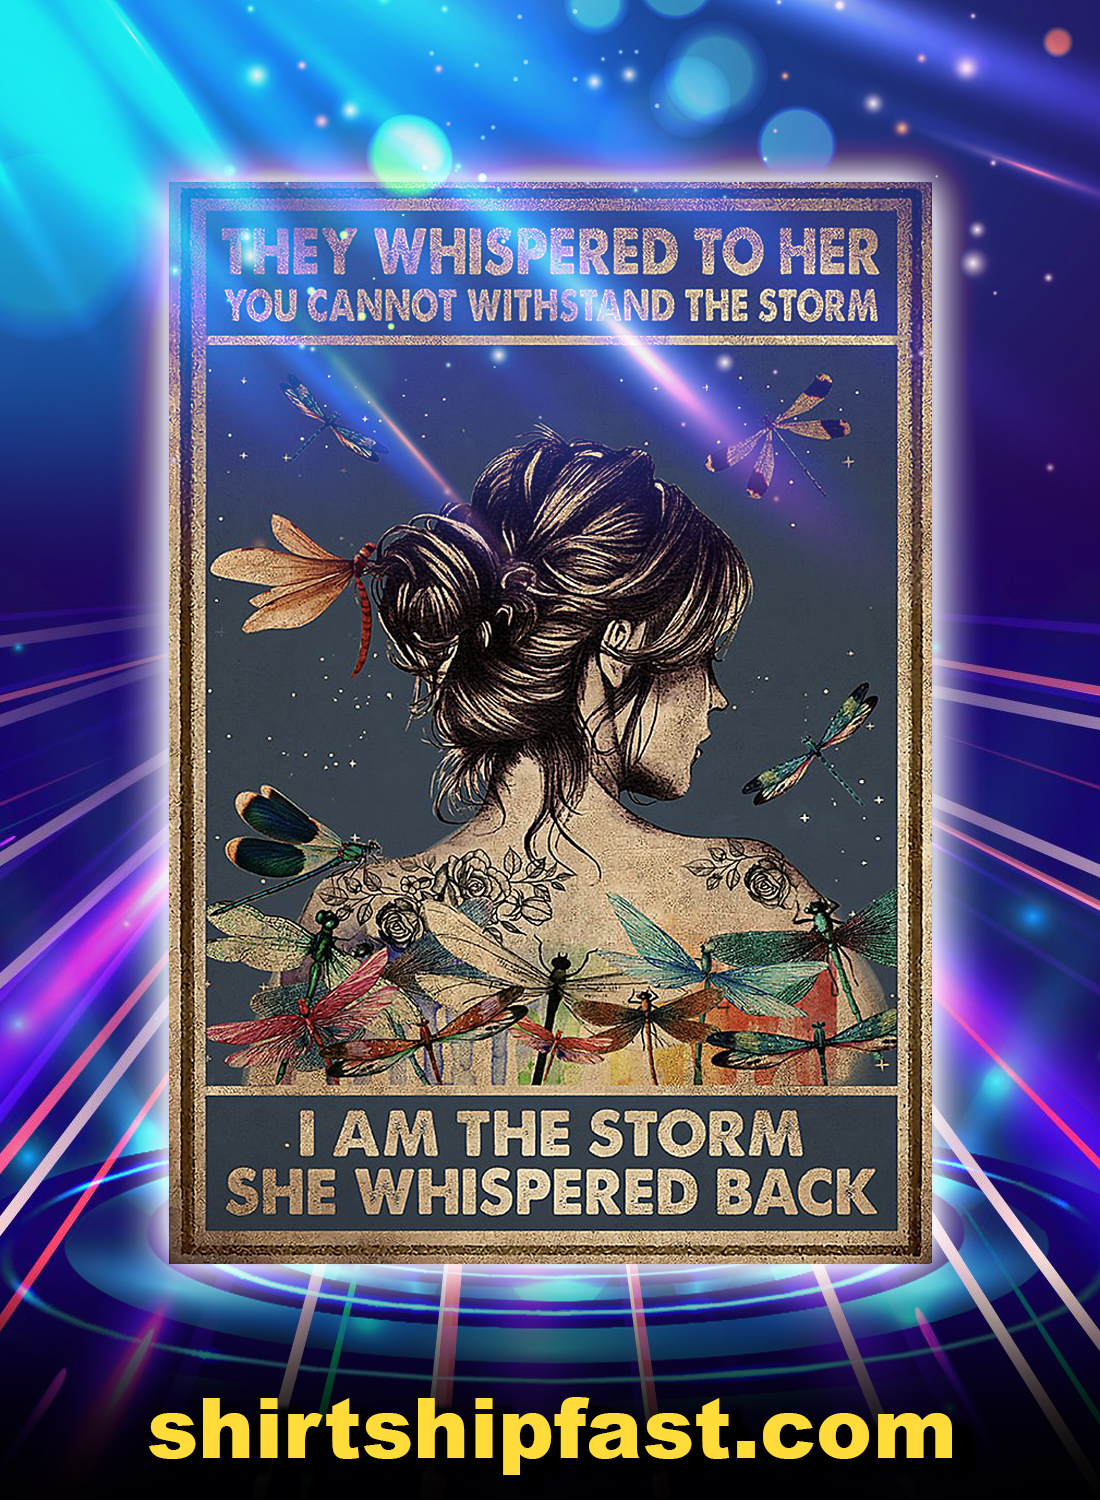 Hippie dragonfly they whispered to her you can not withstand the storm poster - A4